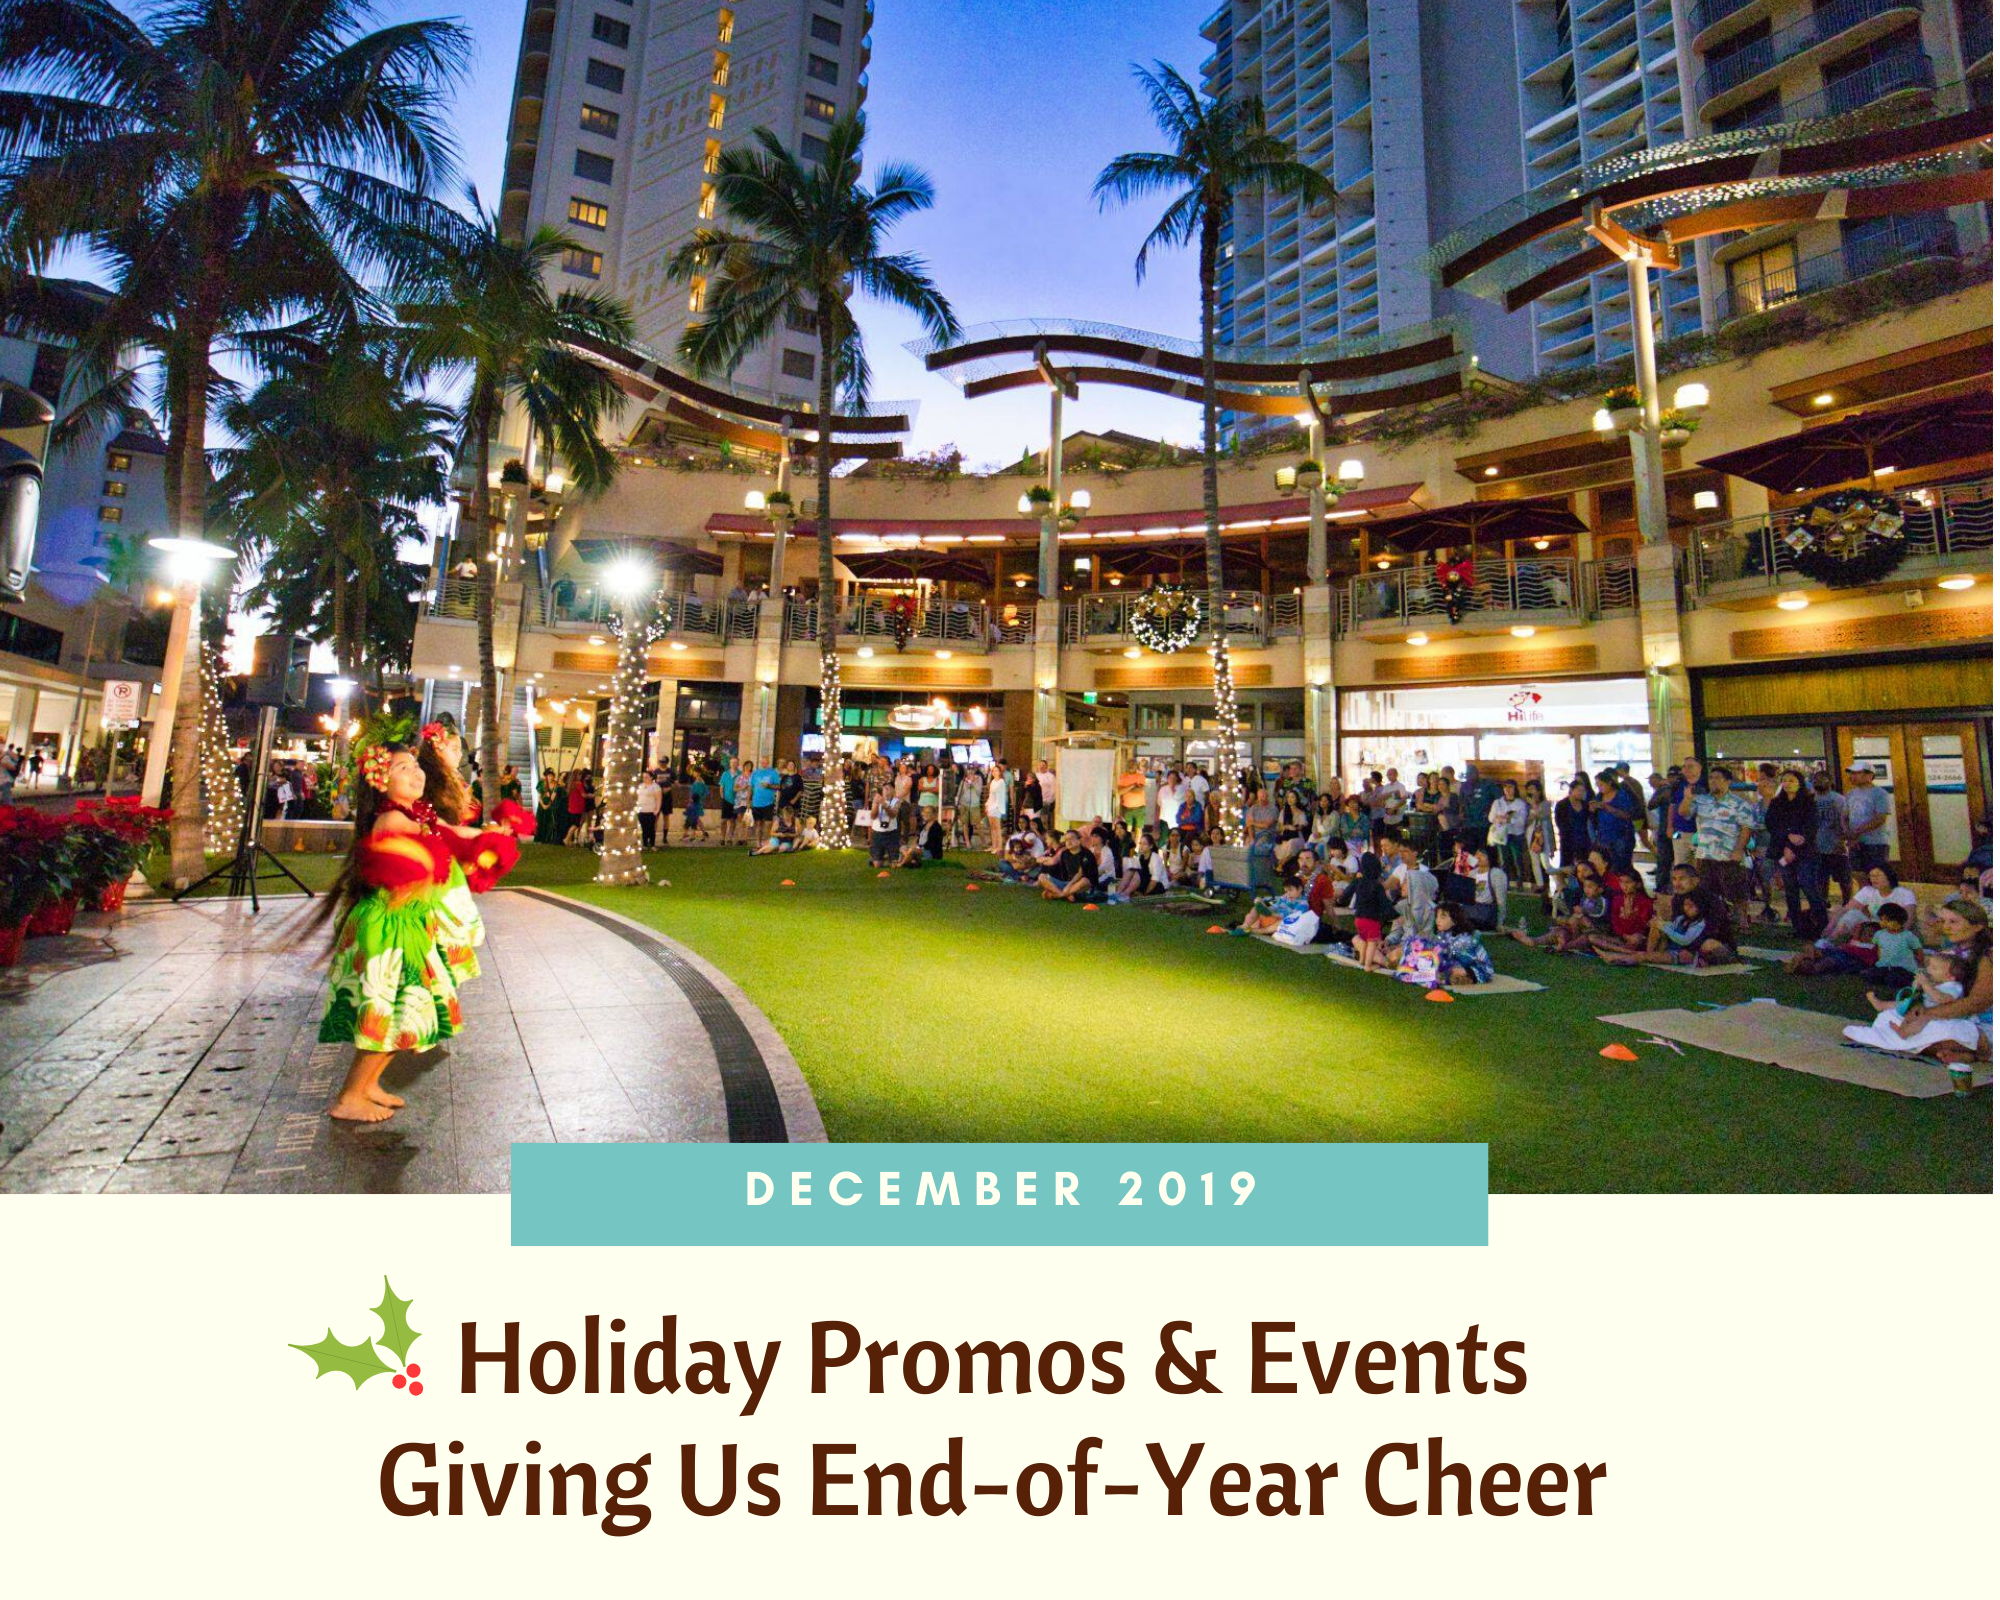 December 2019: Holiday Promos & Events Giving Us End-of-Year Cheer